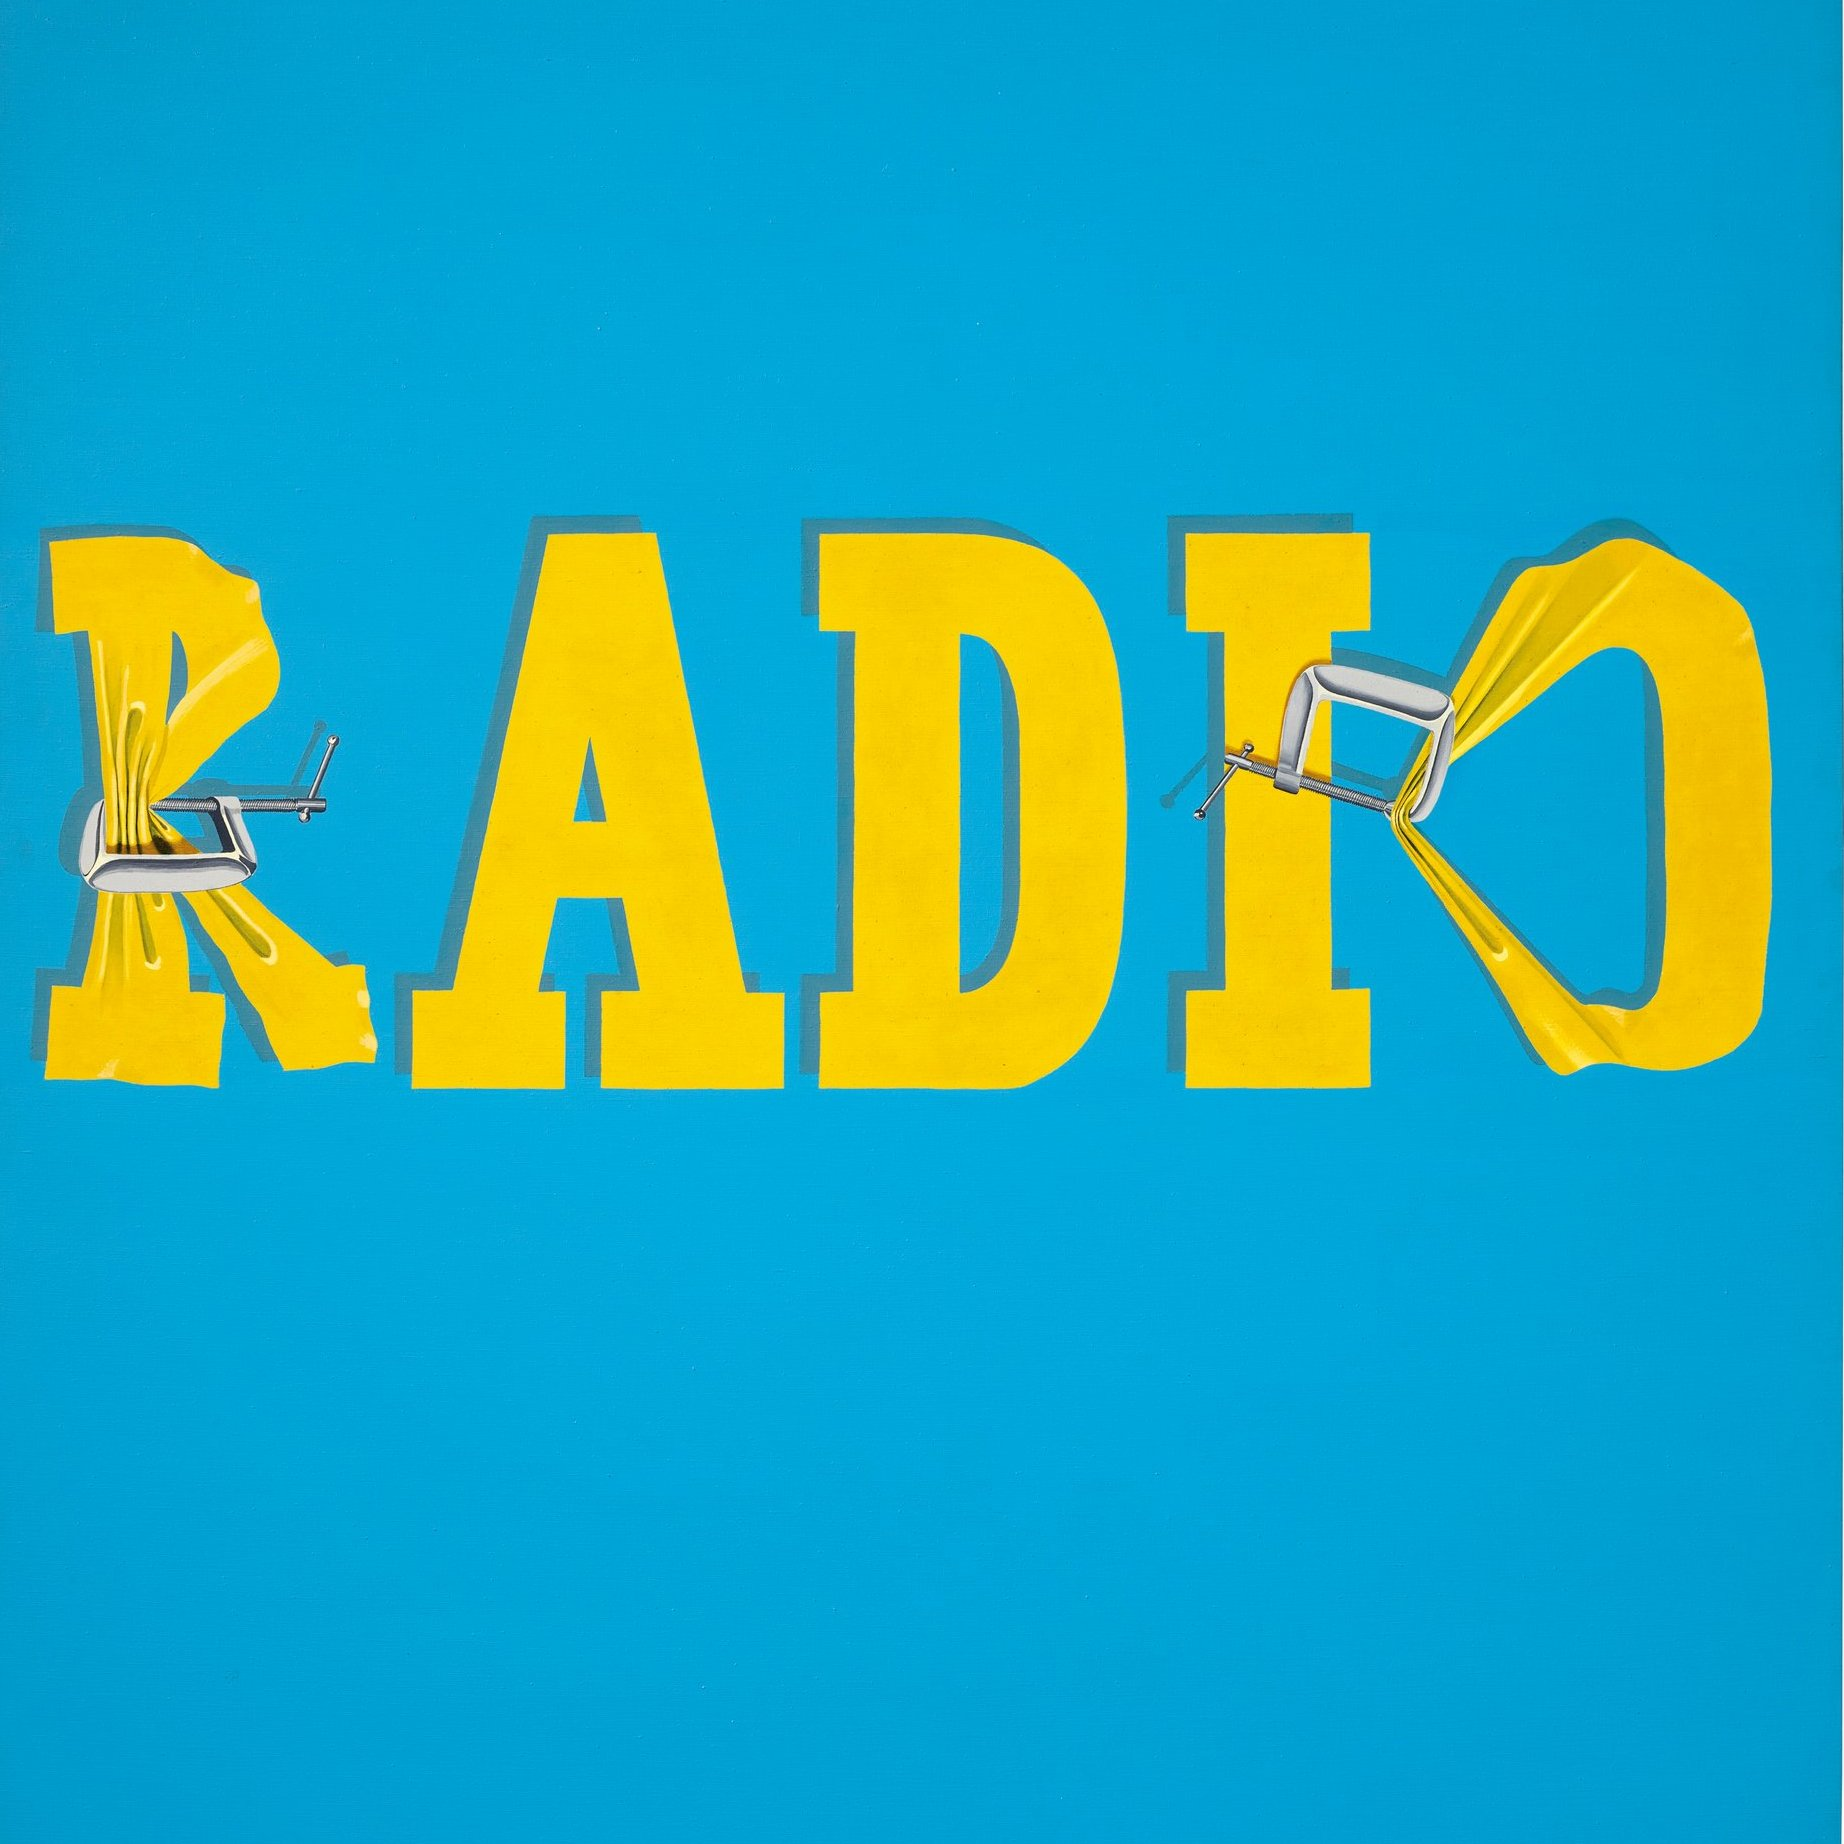 Ed Ruscha's Hurting the Word Radio #2, 1964. Courtesy of Christie's.